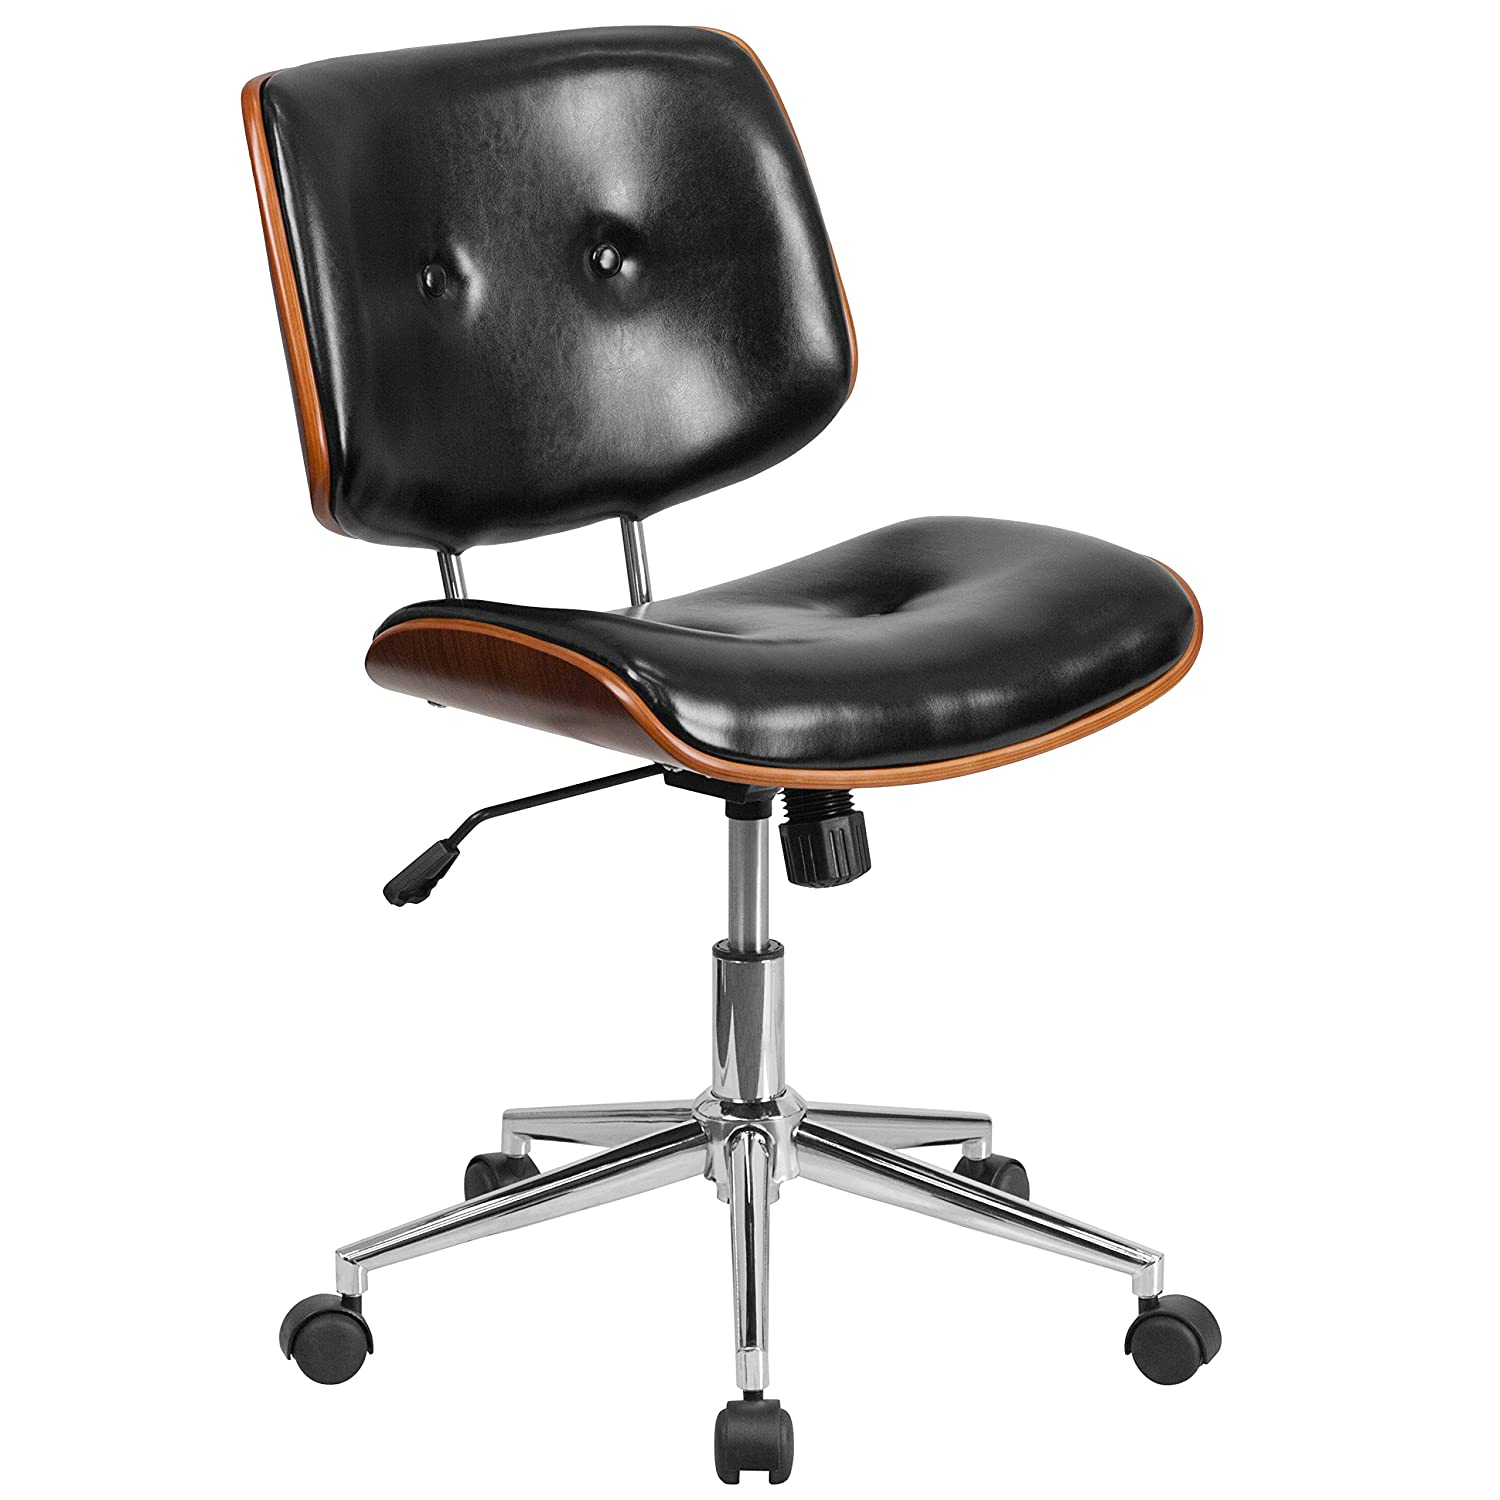 Furniture Official Website Us Fashion Mid-back Height-adjustable Armless Basic Faux Leather Computer Studio Task Office Chair With 360 Degree Swivel Office Chairs